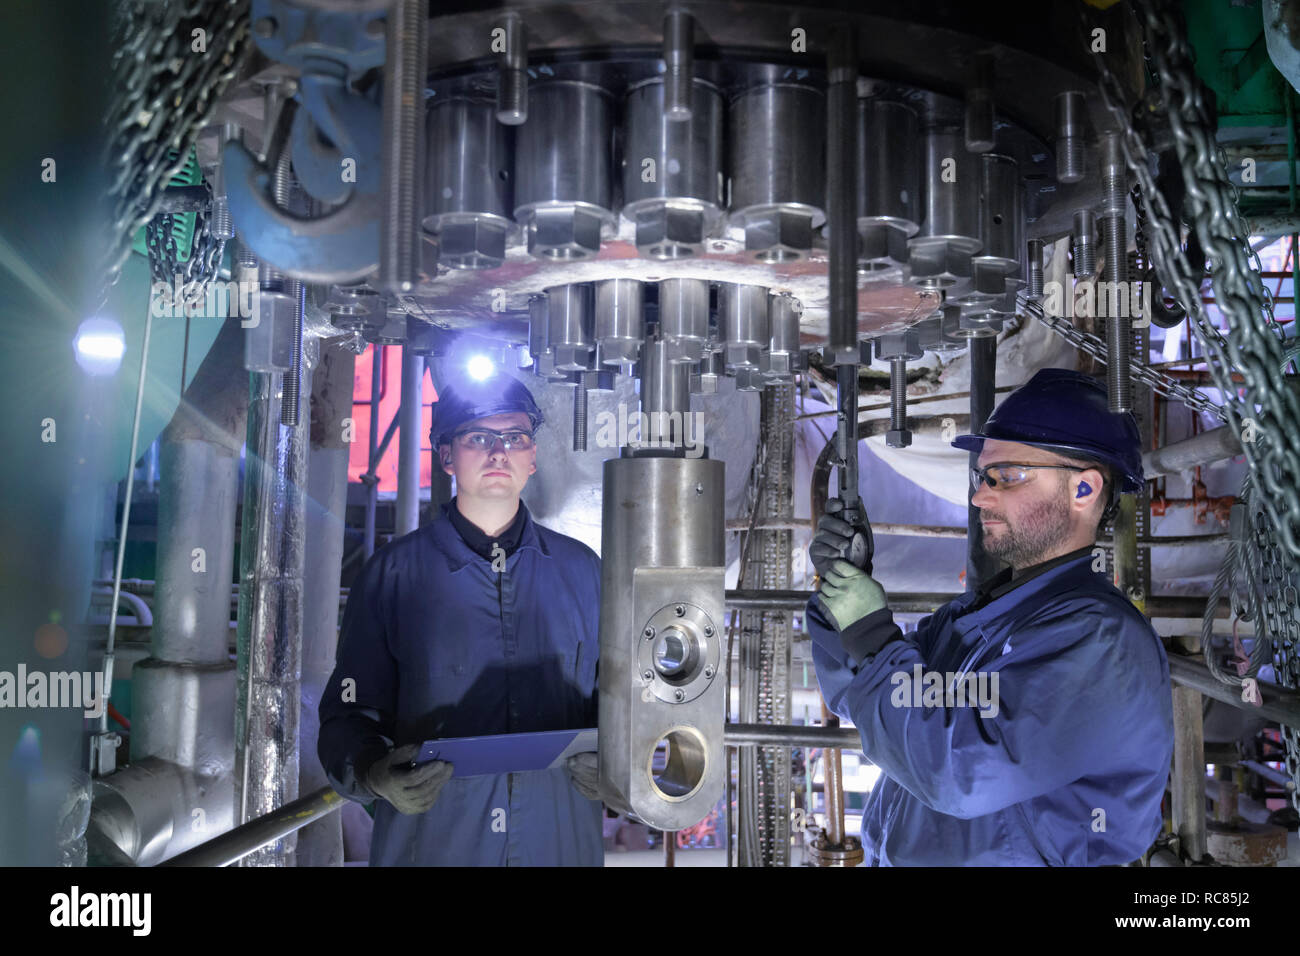 Engineers working in confined space under turbine during outage in nuclear power station - Stock Image